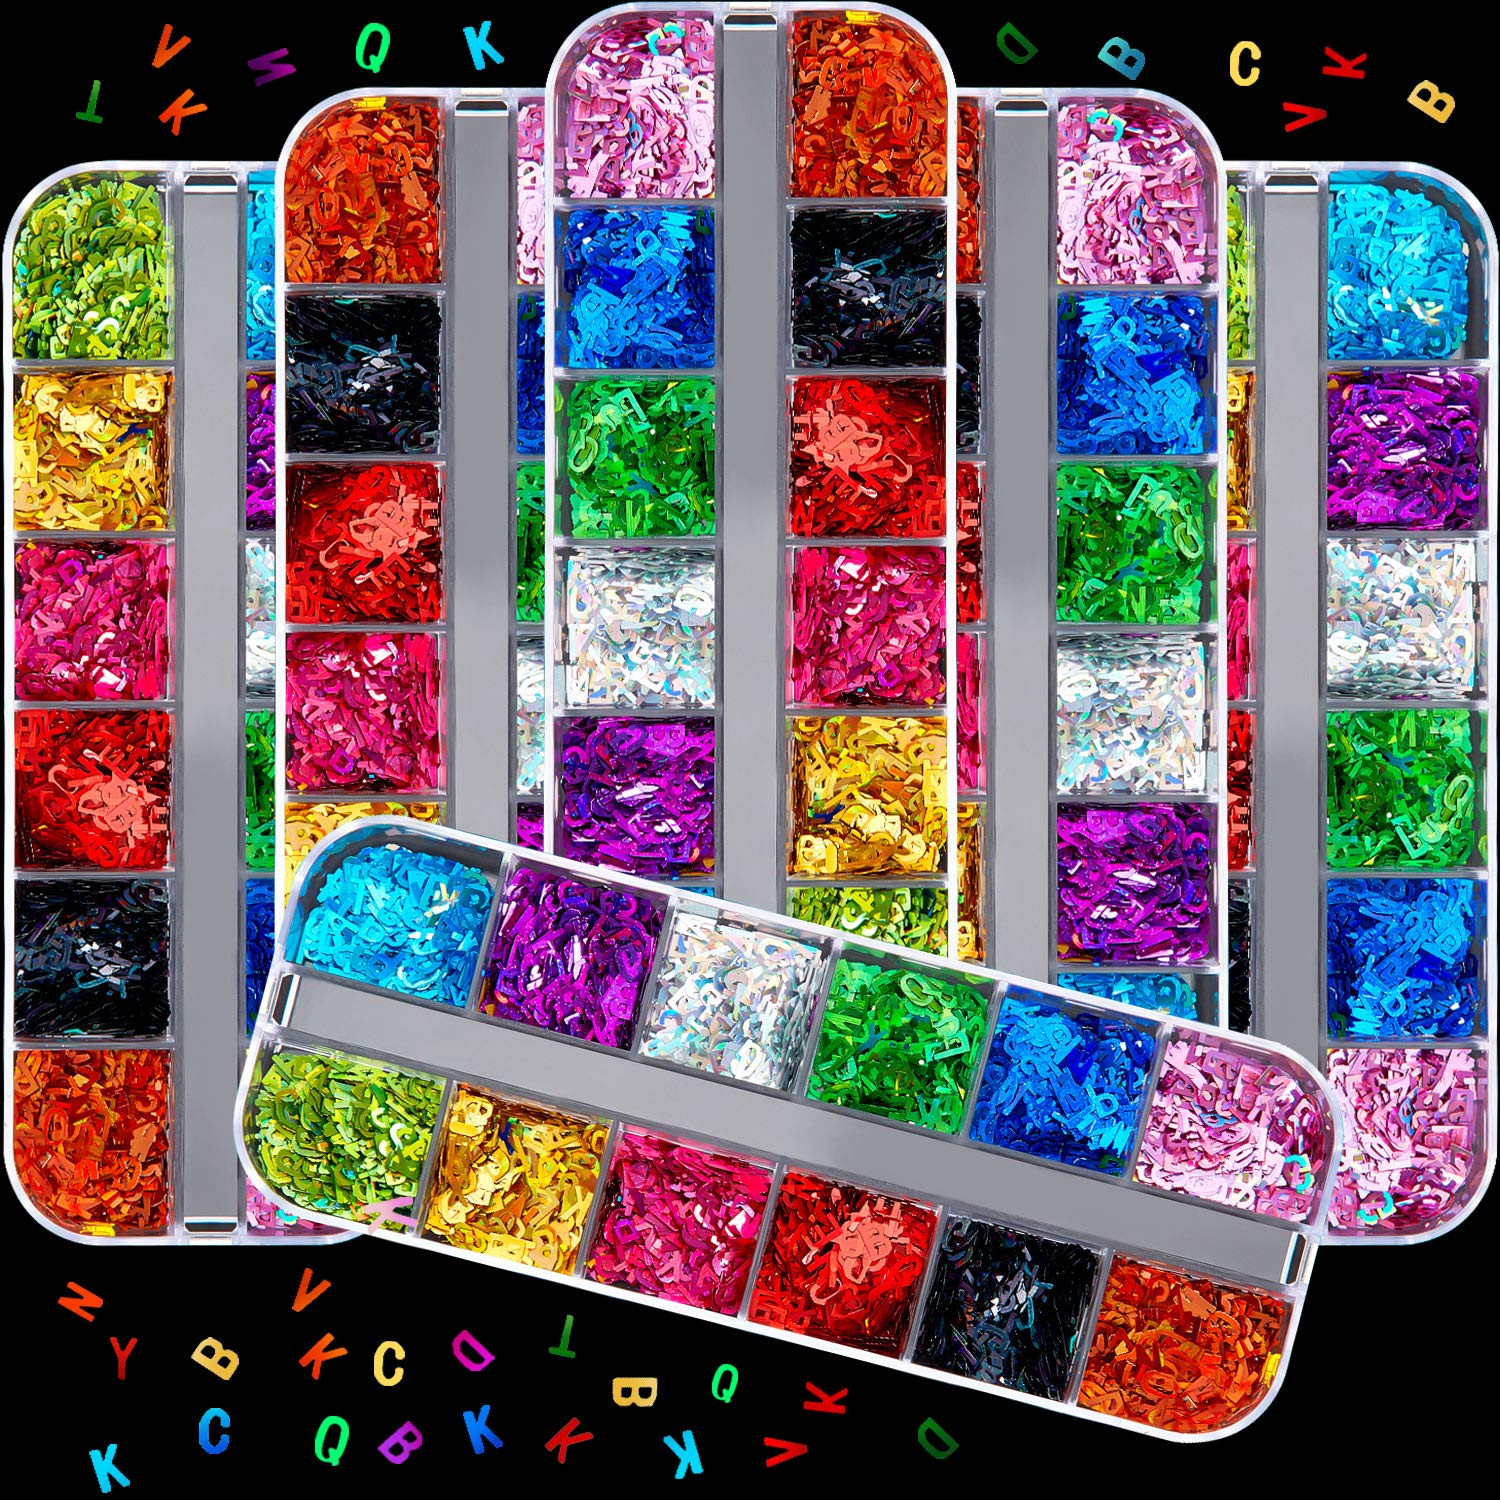 72 Boxes Holographic Letter Sequins Nail Decals Discount is also Chicago Mall underway